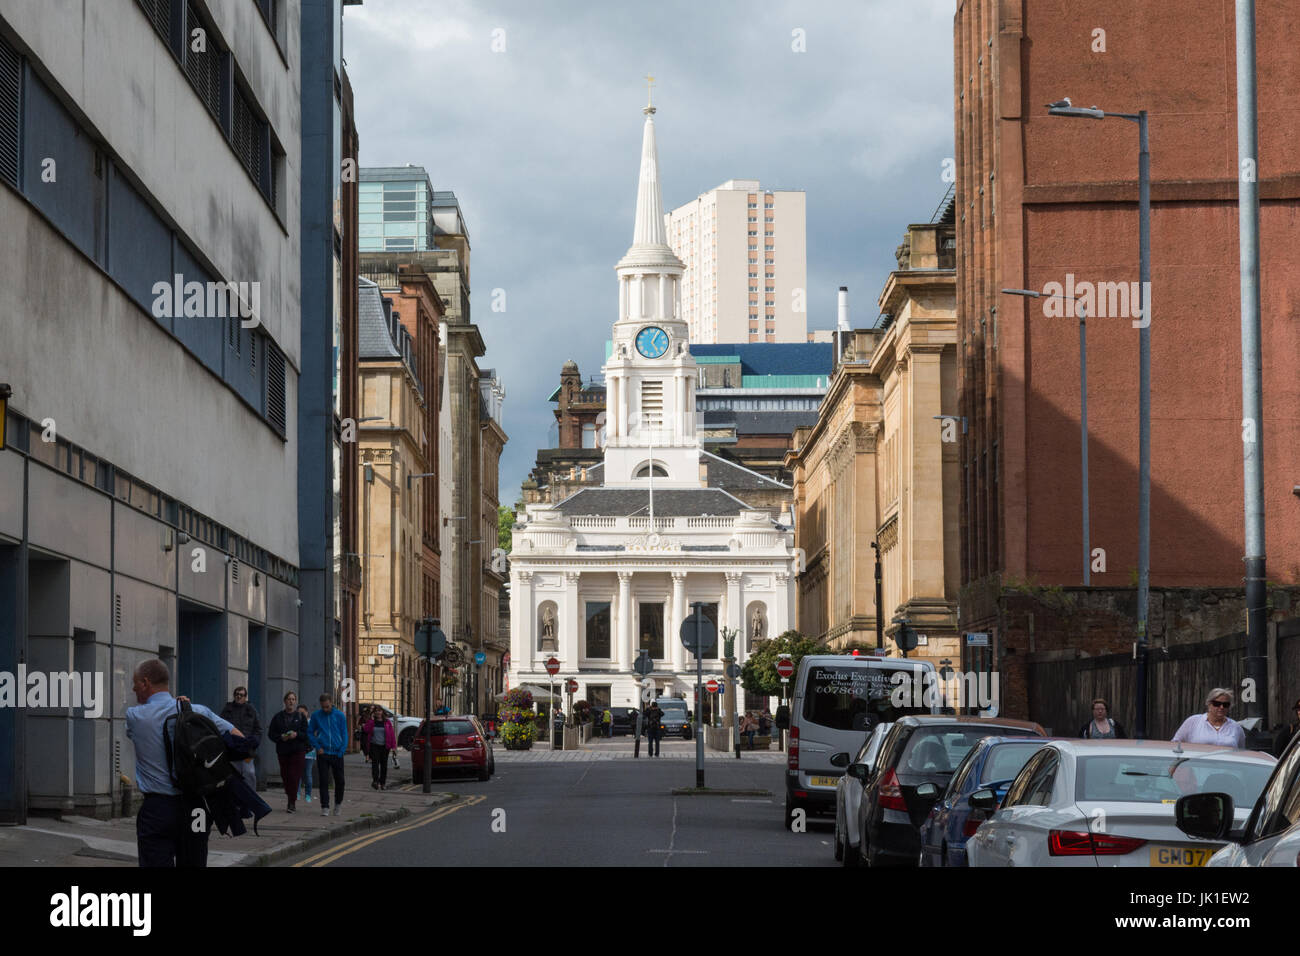 Hutchesons city grill - formerly Hutchesons Hall and Hutchesons hospital, in Glasgows merchant city, Glasgow, Scotland, - Stock Image